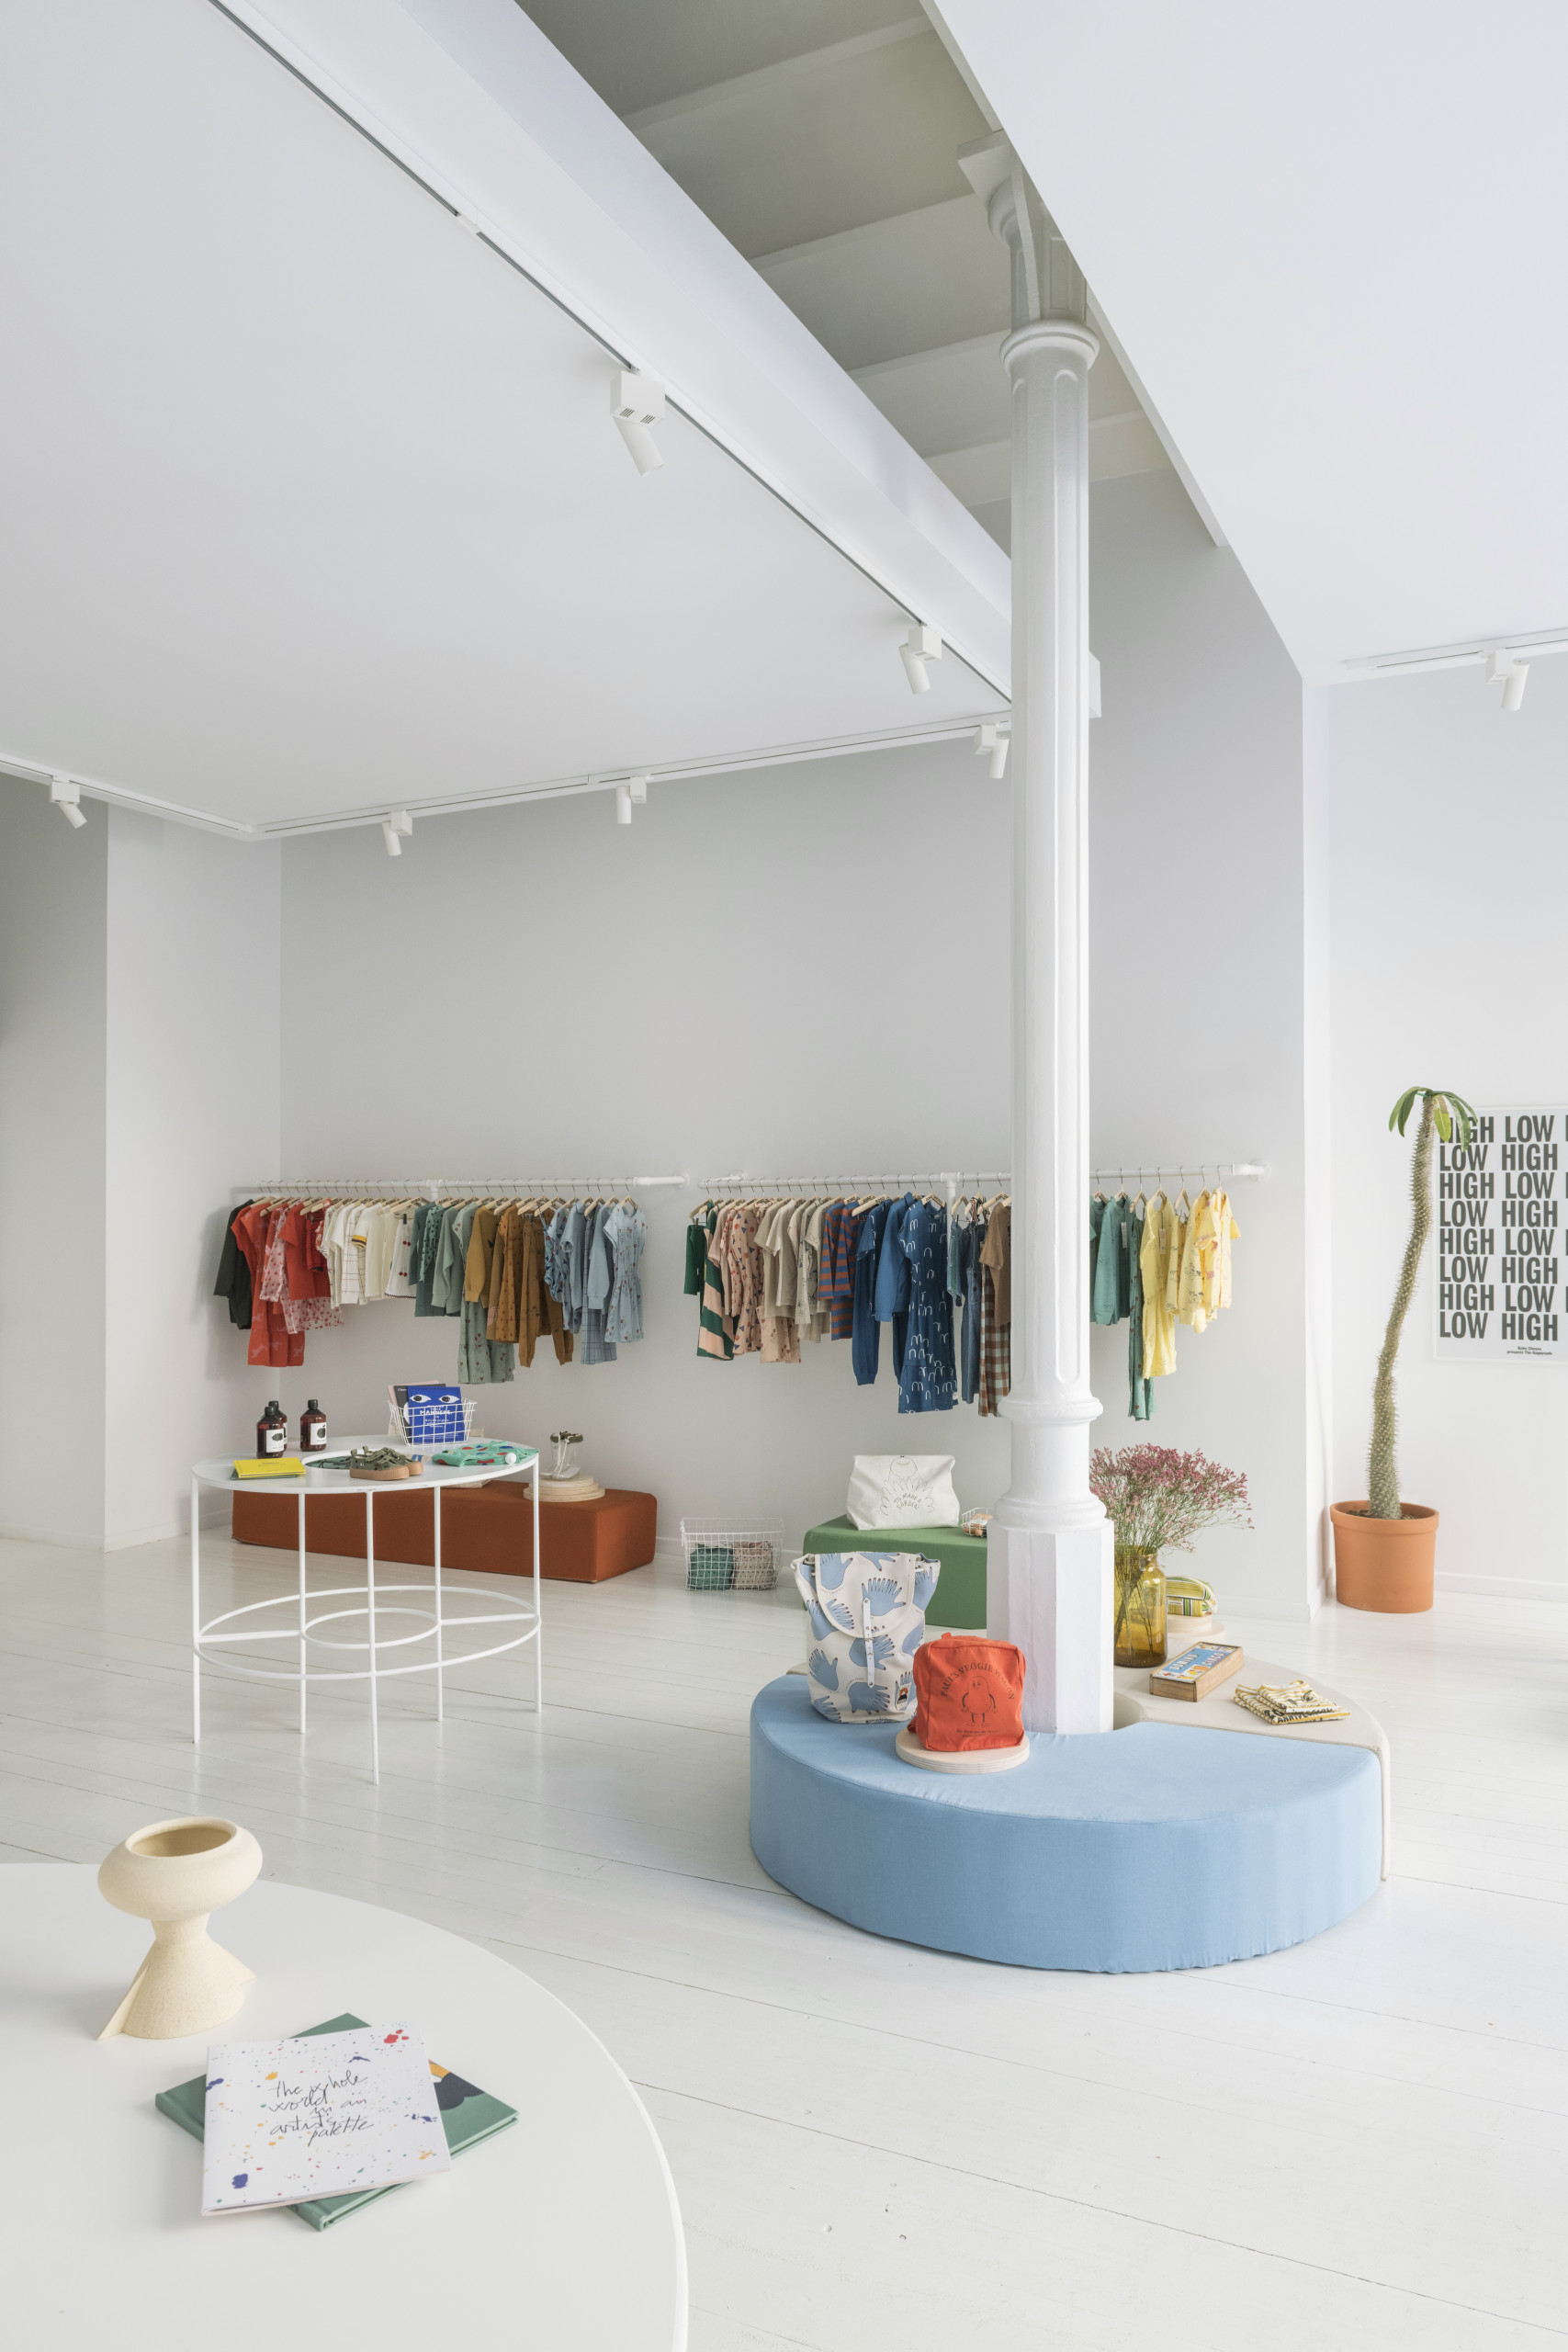 BOBO CHOSES THE HAPPYSADS RETAIL SPACE